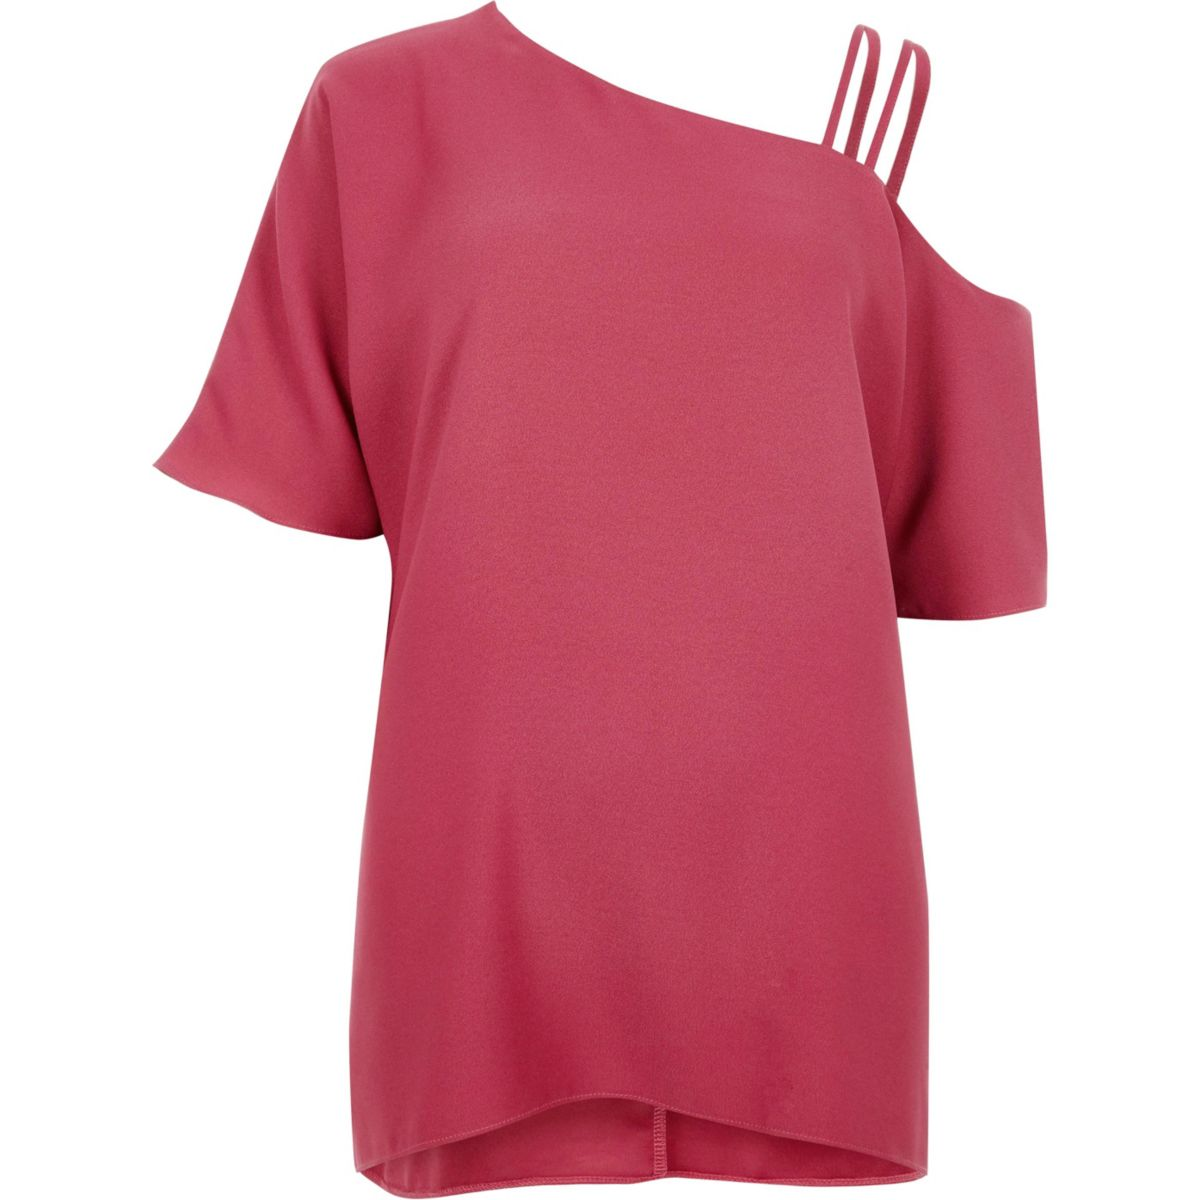 Pink asymmetric cold shoulder detail top